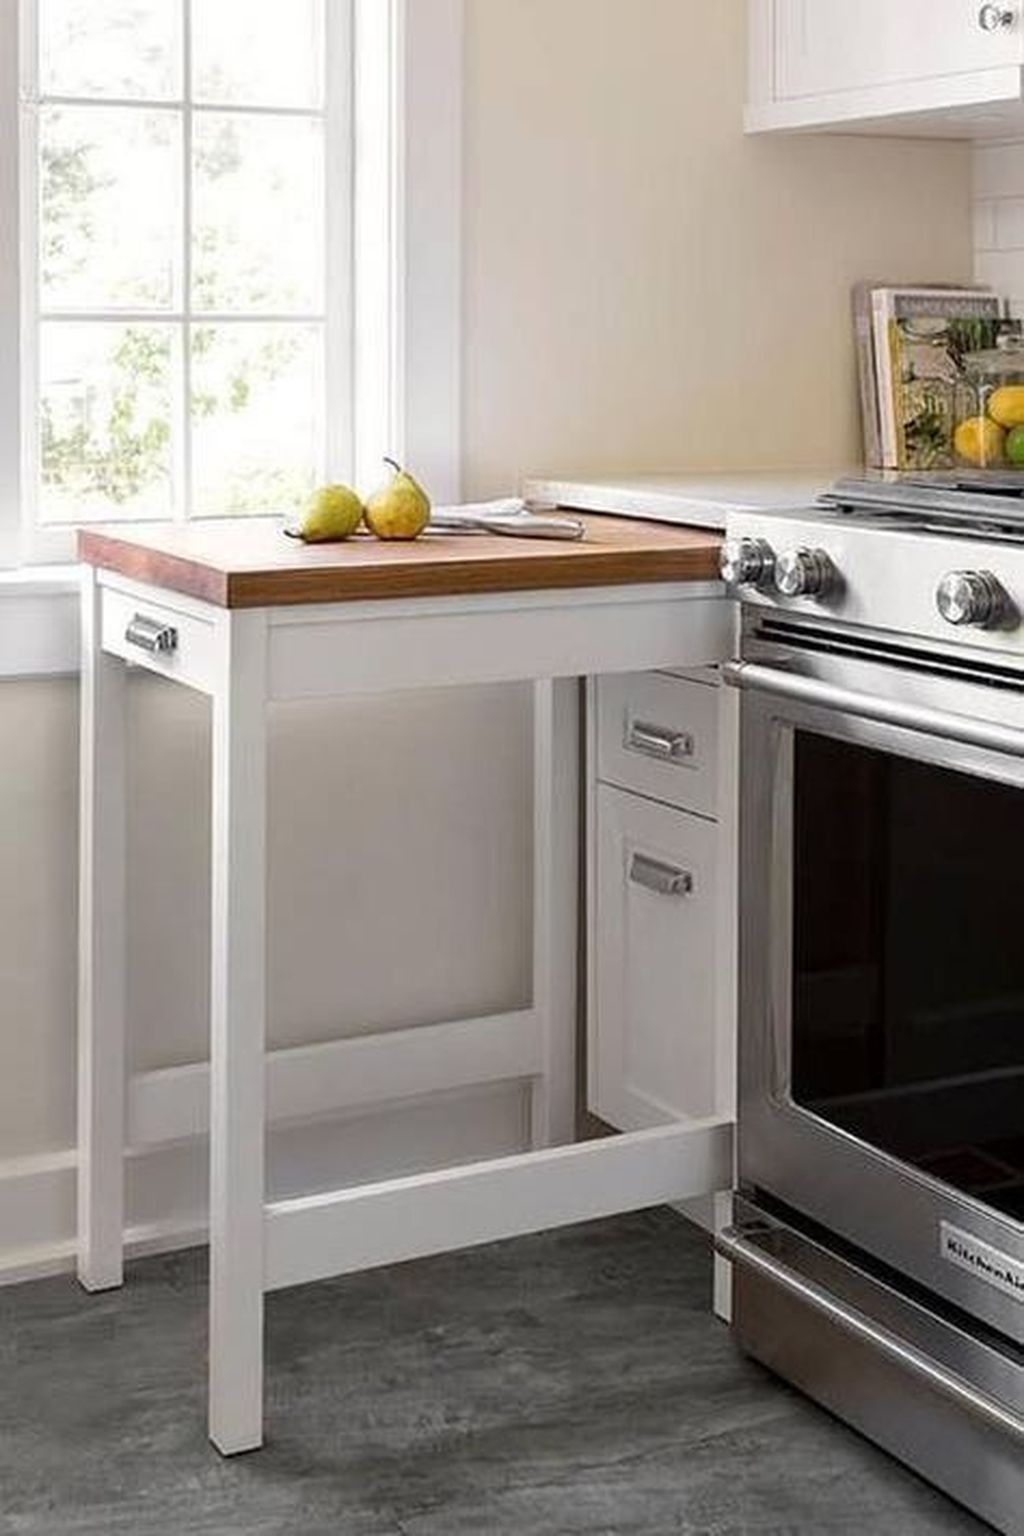 Best Tiny Kitchen Design Ideas For Your Small Space Inspiration 10